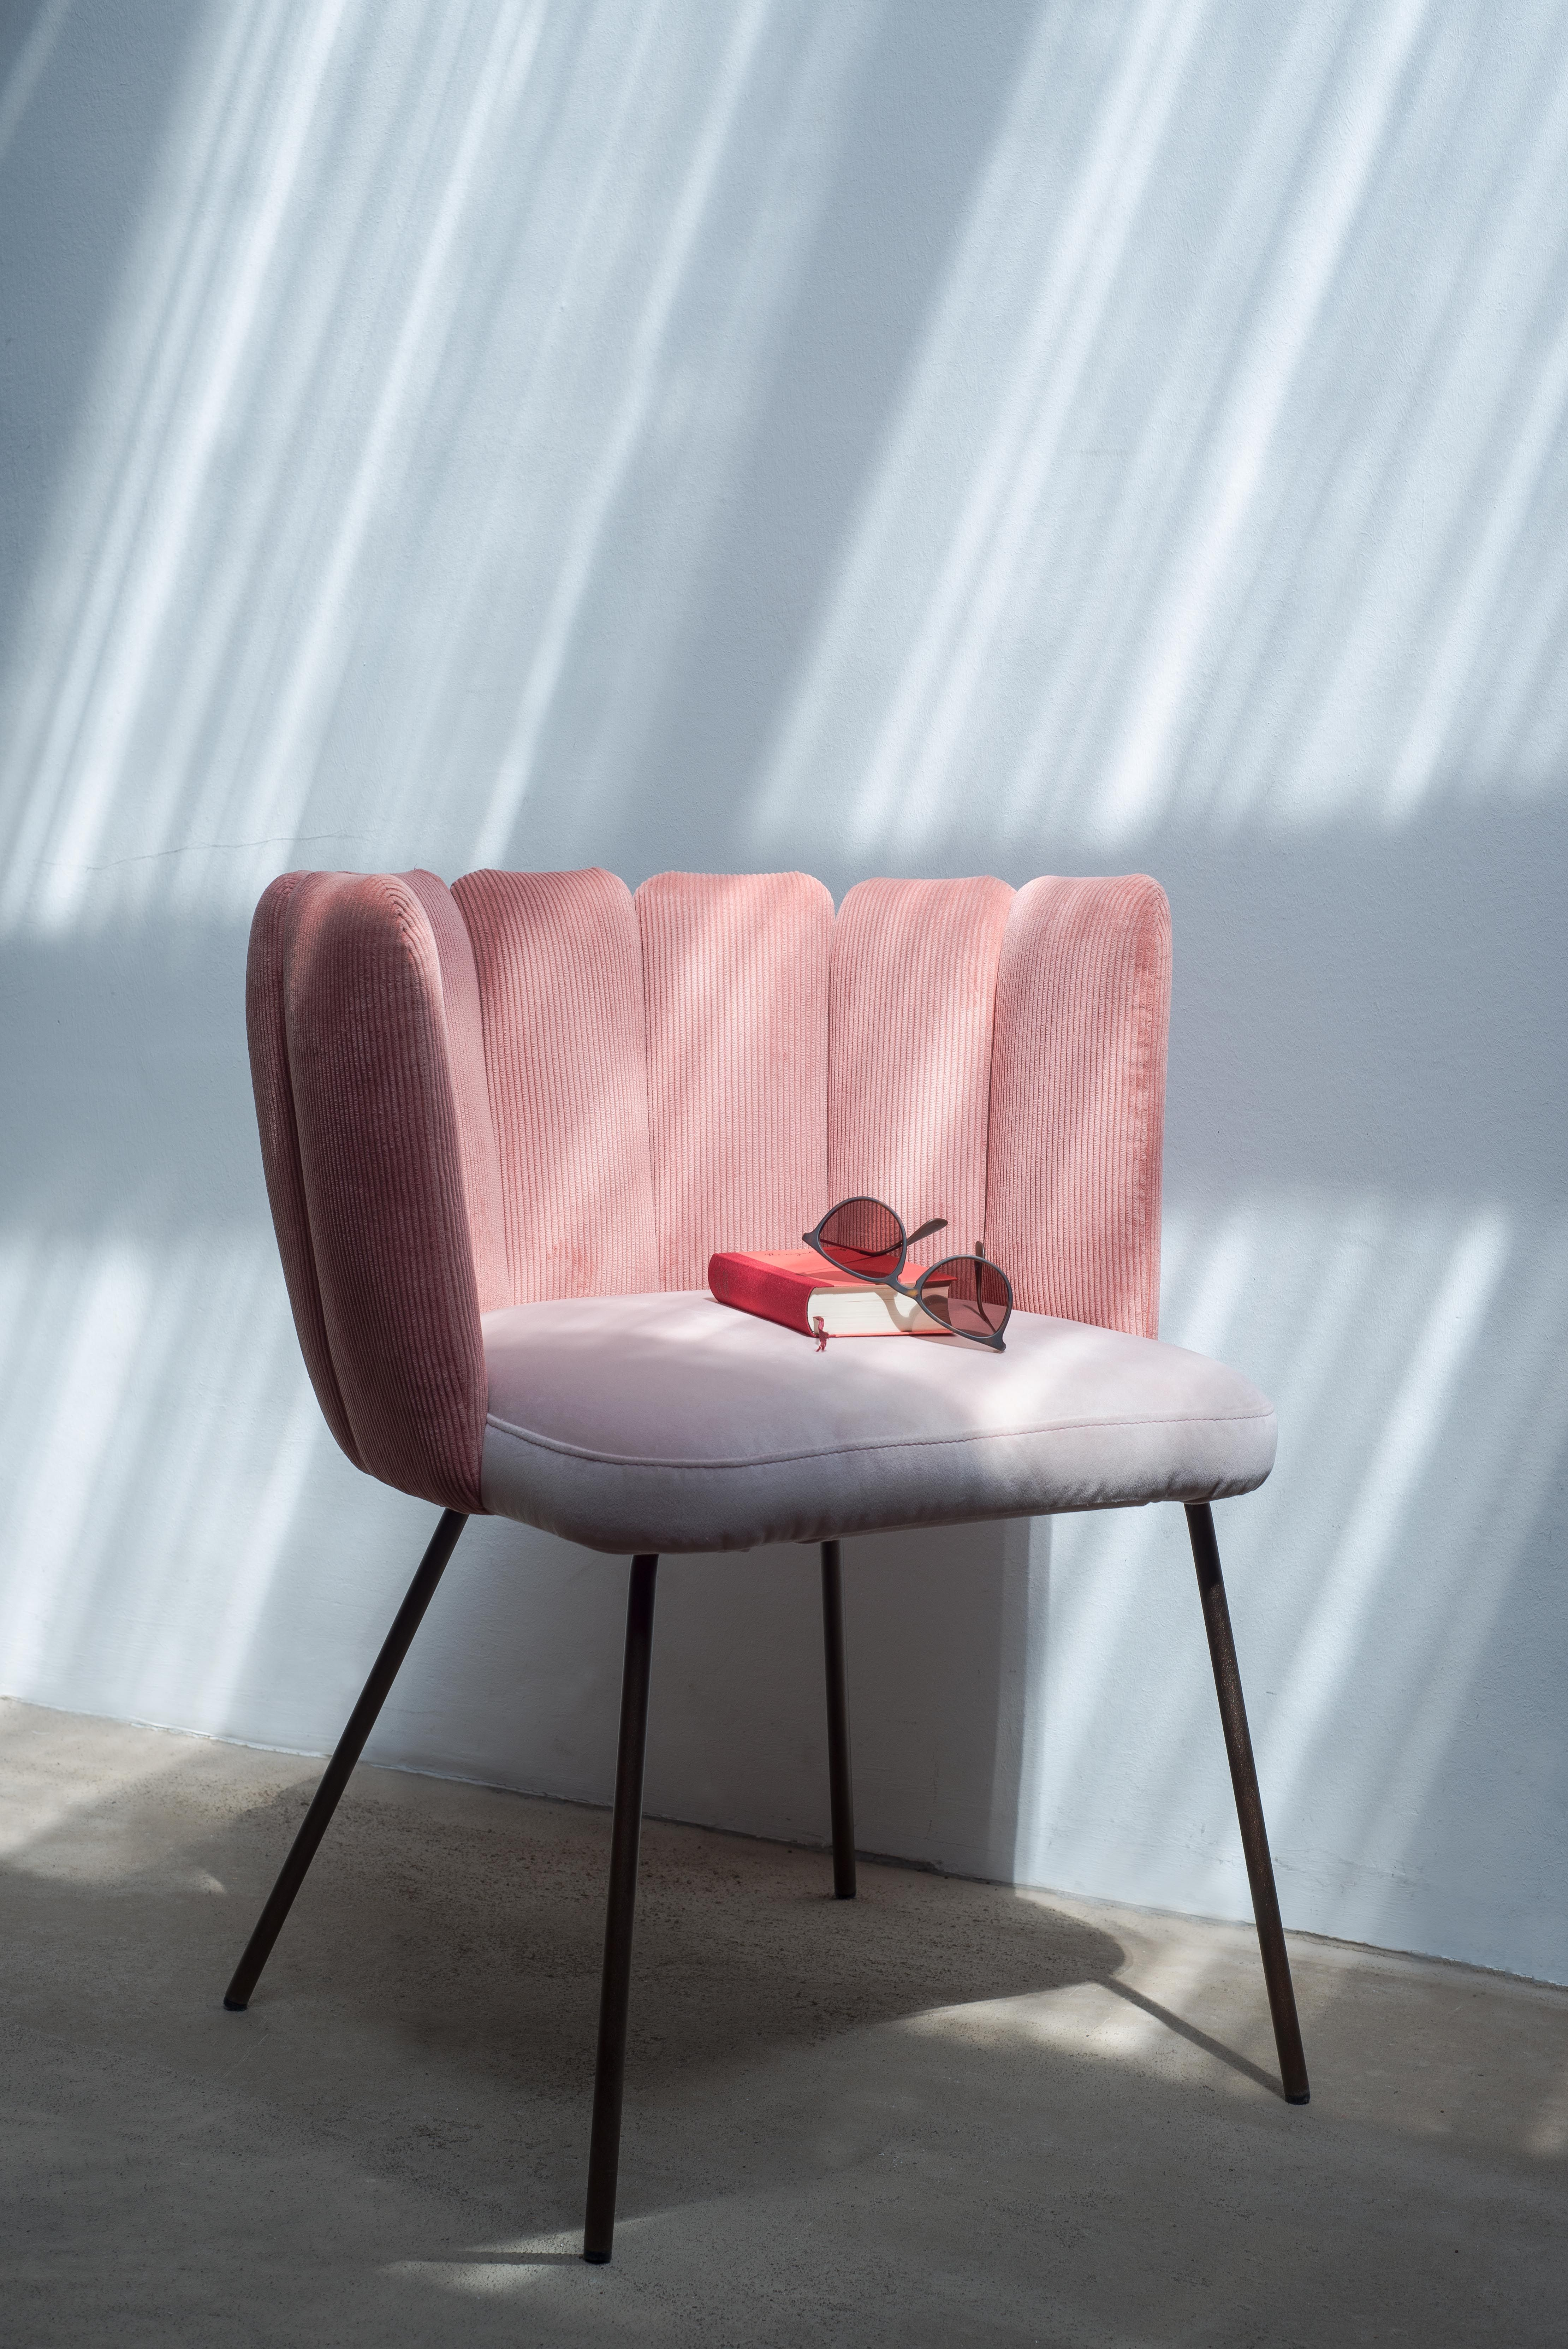 Kff Design Stoelen.Kff Gaia Dining Chair Designed By Monica Armani Stuhl Designed